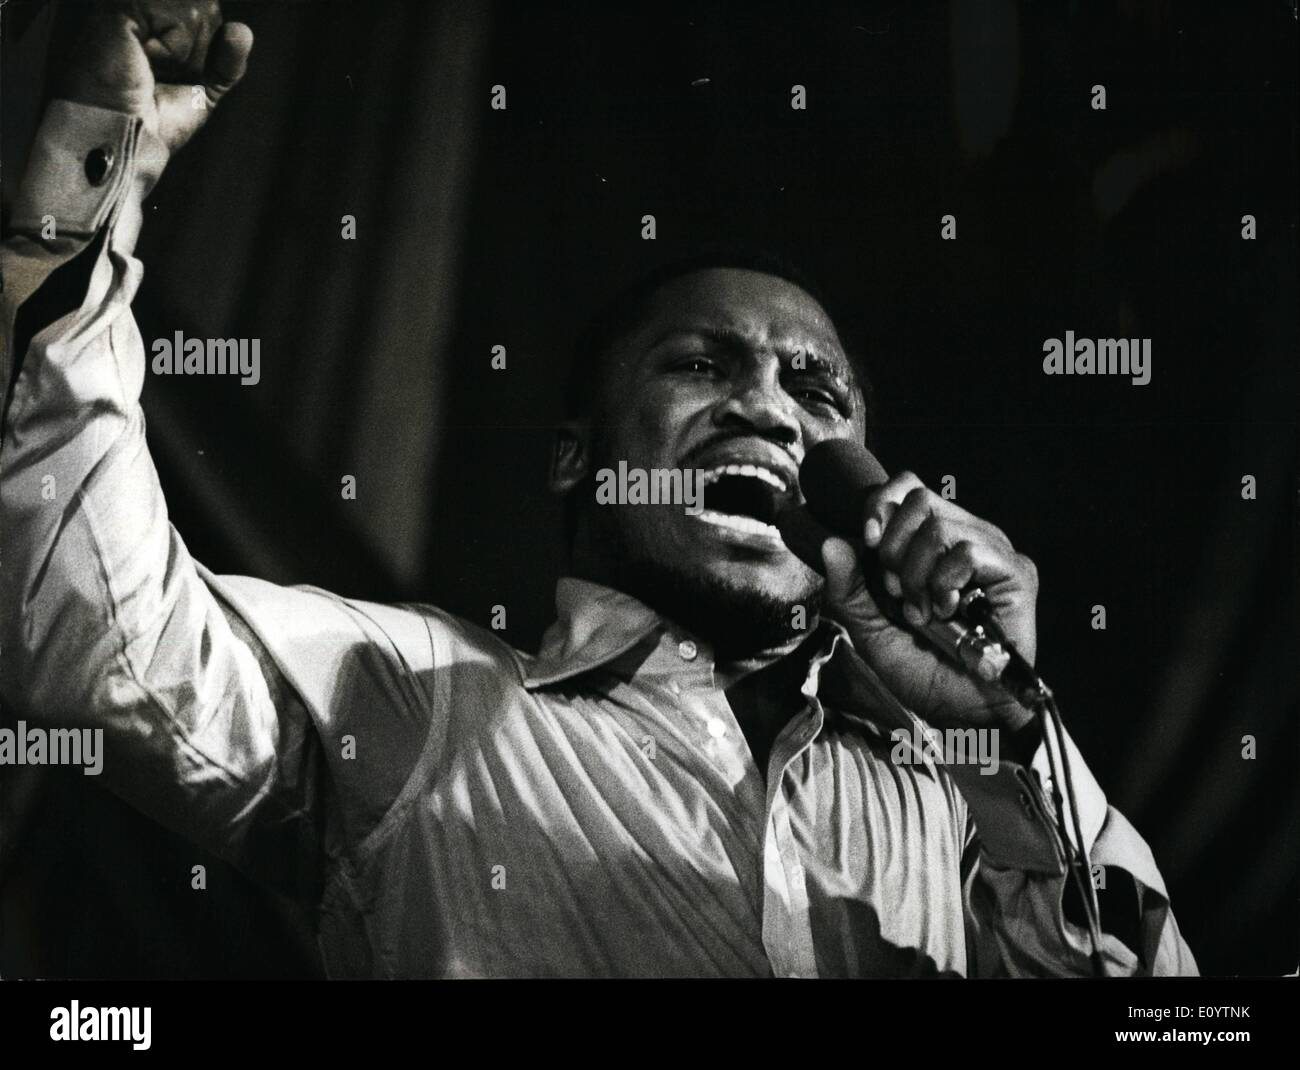 Jun. 06, 1971 - Joe Frazier Sings. World heavyweight boxing champion Joe Frazier, pictured on stage during his singing appearance at the Granada Theatre , Tooting, last night . He was supported by his musicians. - Stock Image